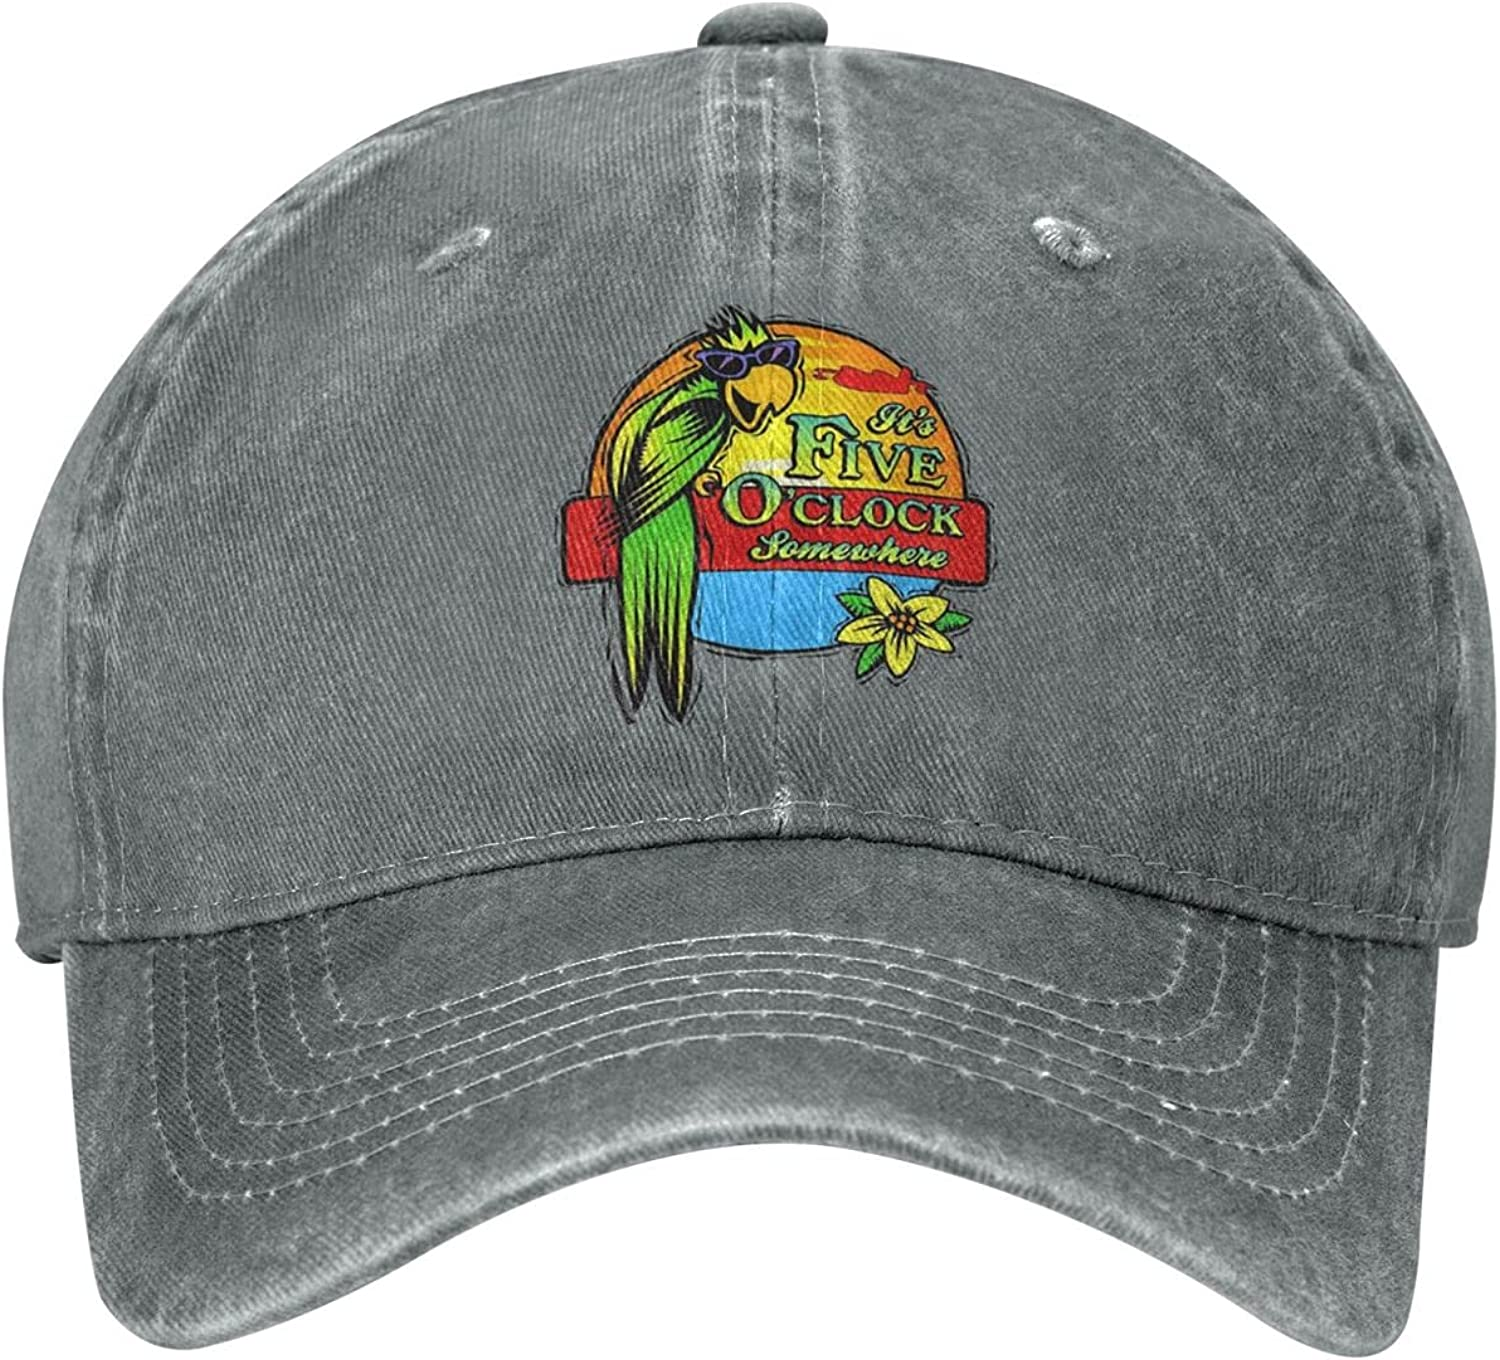 Jimmy Buffet It's Five O'Clock Somewhere Sun Hat Dad Hat Baseball Cap Cotton Adjustable Fitted for Women Men Gray